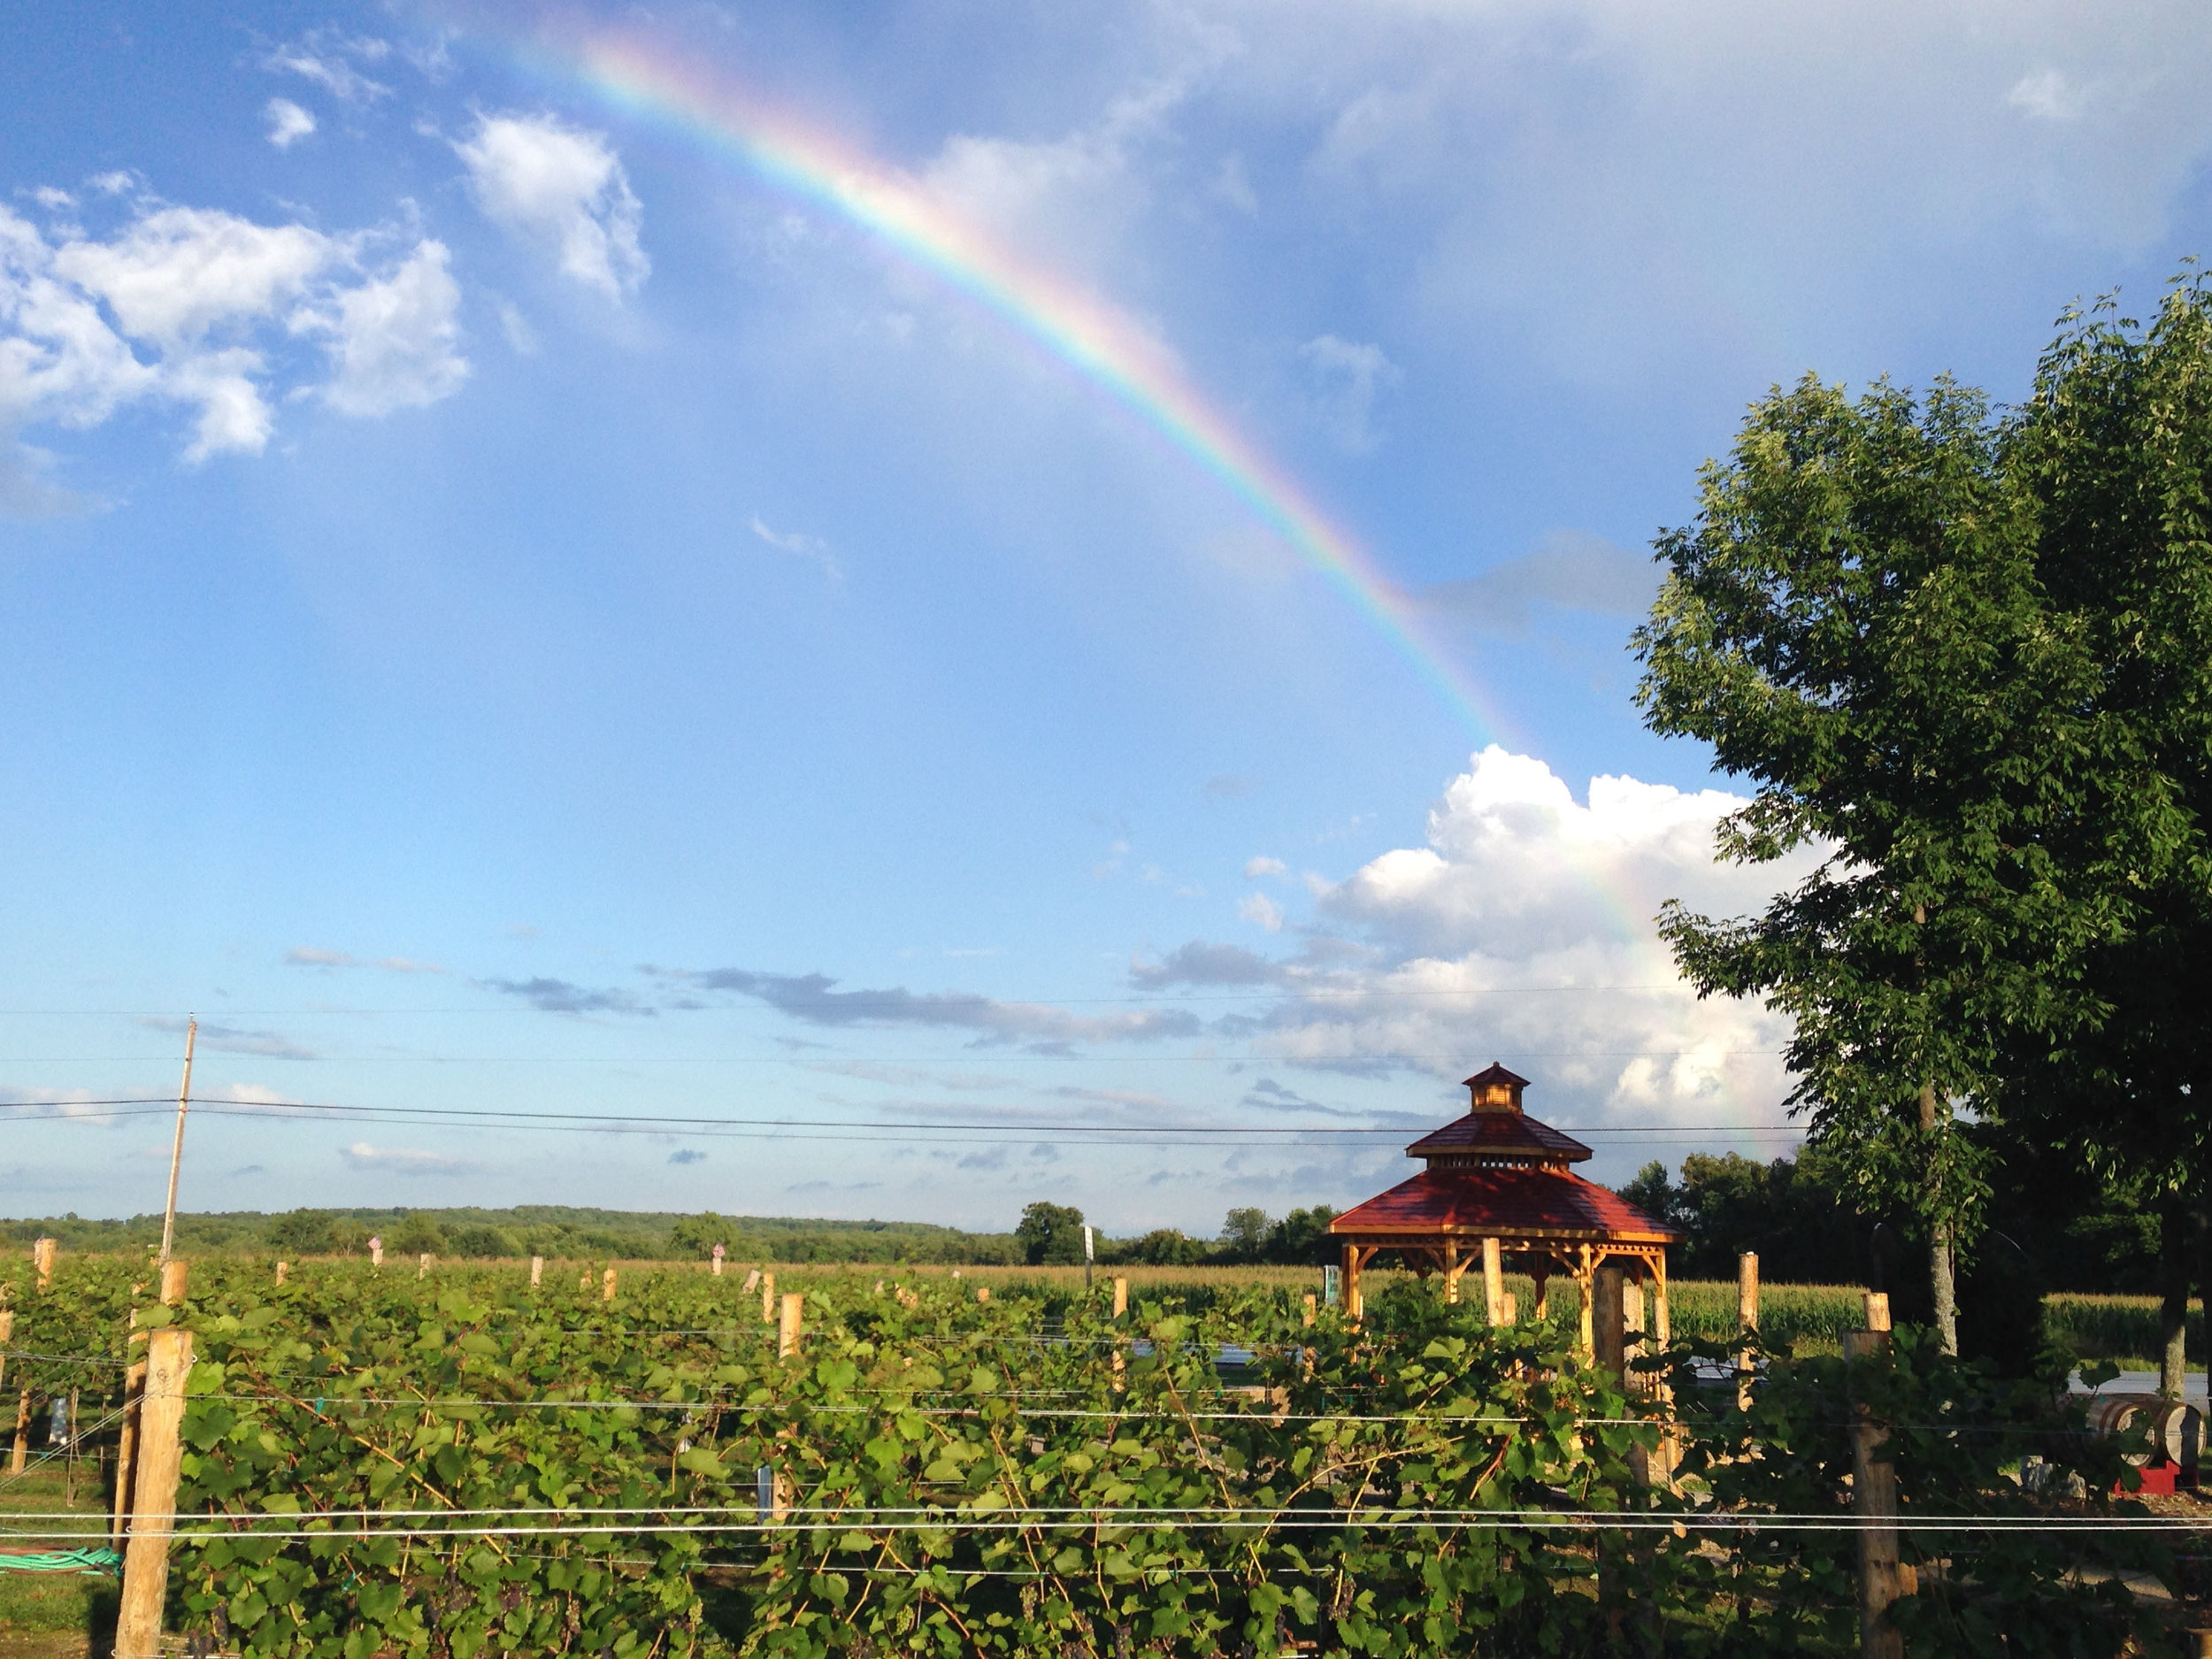 Harbor Ridge sees lots of rainbows during the summer. There's a reason it's called Rainbow Ridge!